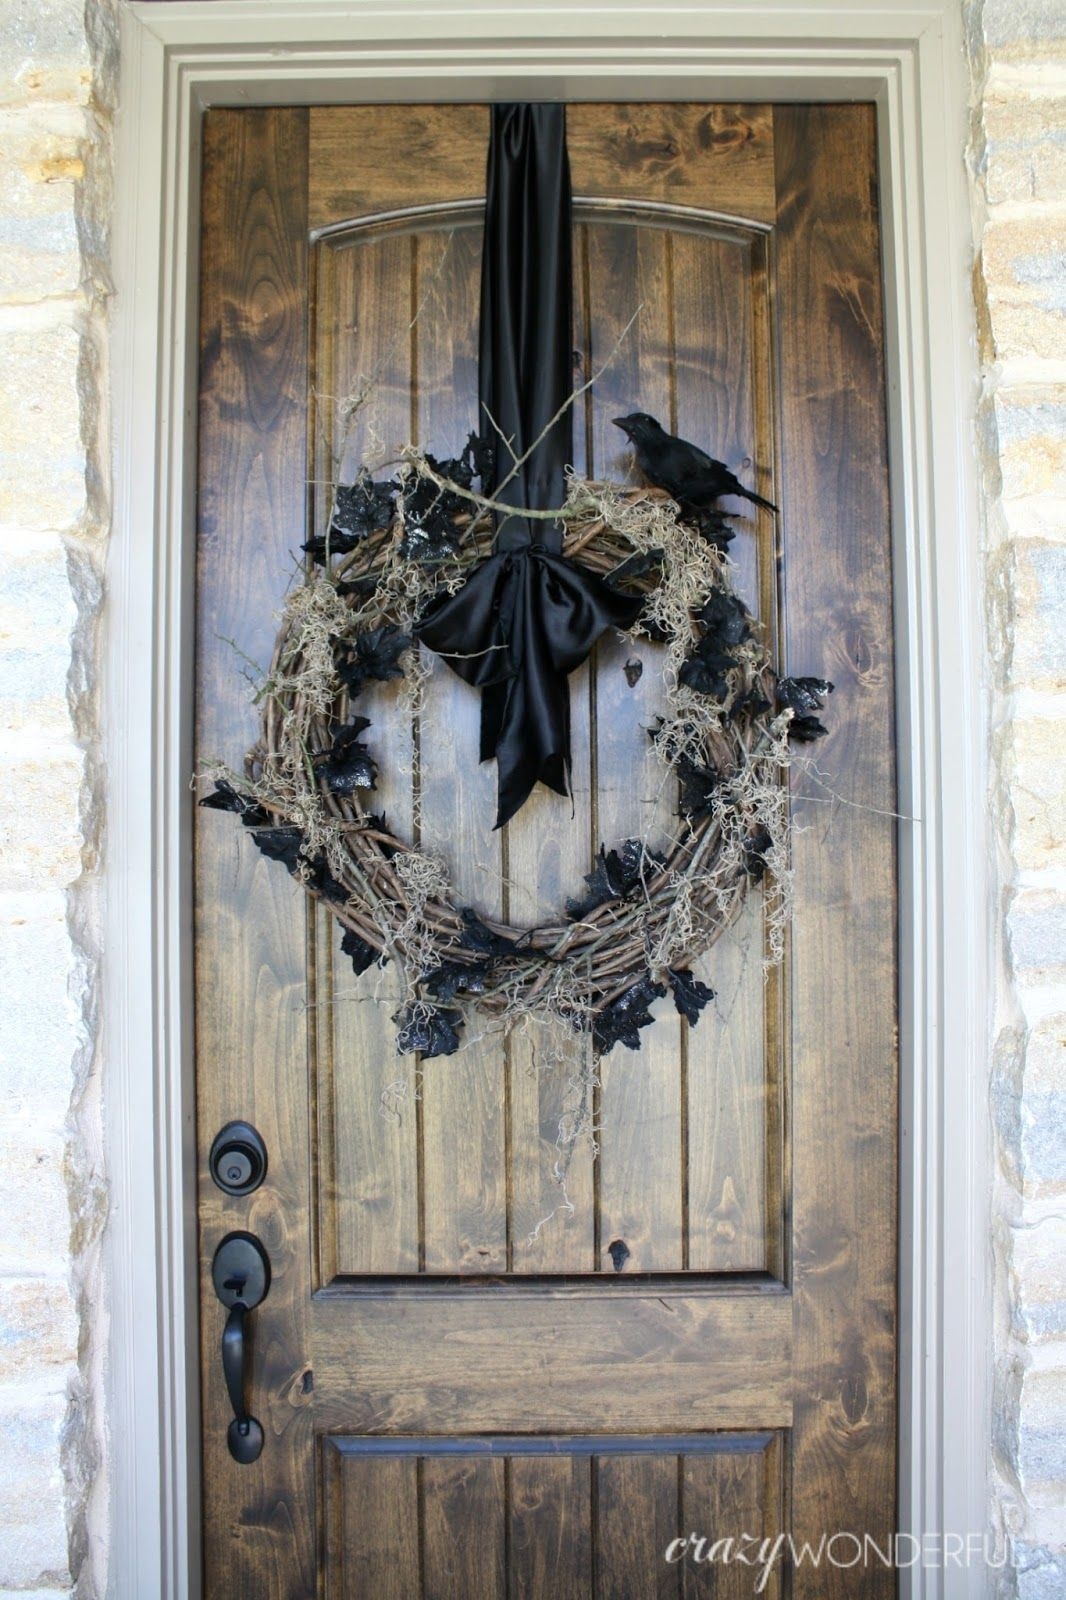 Hometalk diy christmas window decoration - Here S A Great Diy Halloween Porch Tutorial You Ll Want To Add To Your List Of Go To Crafts Create A Spooky Halloween Wreath For Scary Party Decoration